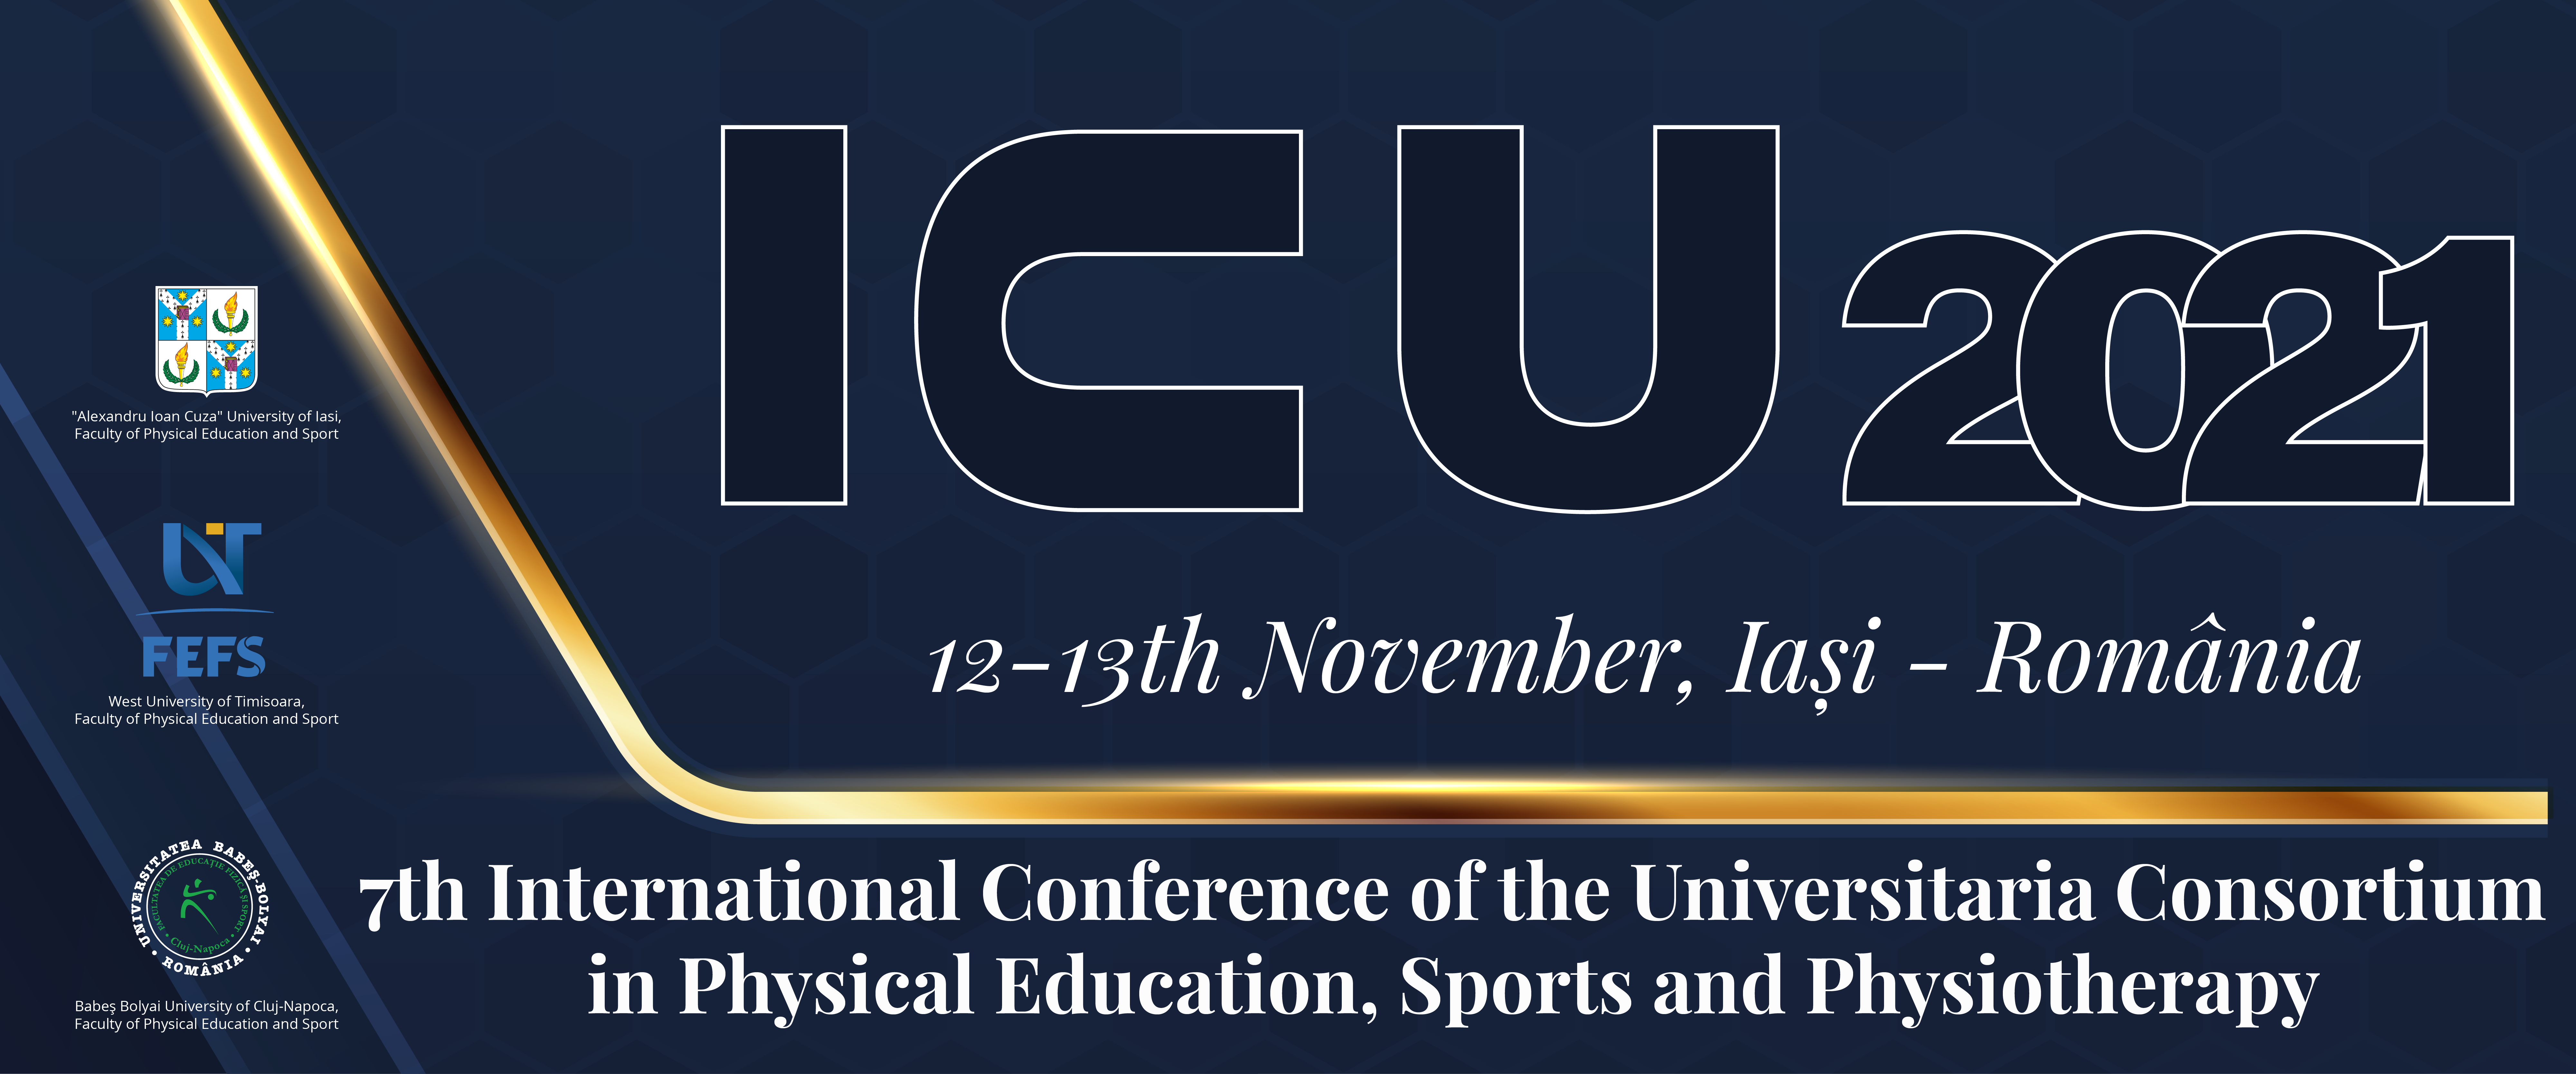 7th International Conference of the Universitaria Consortium In Physical Education, Sports and Physiotherapy